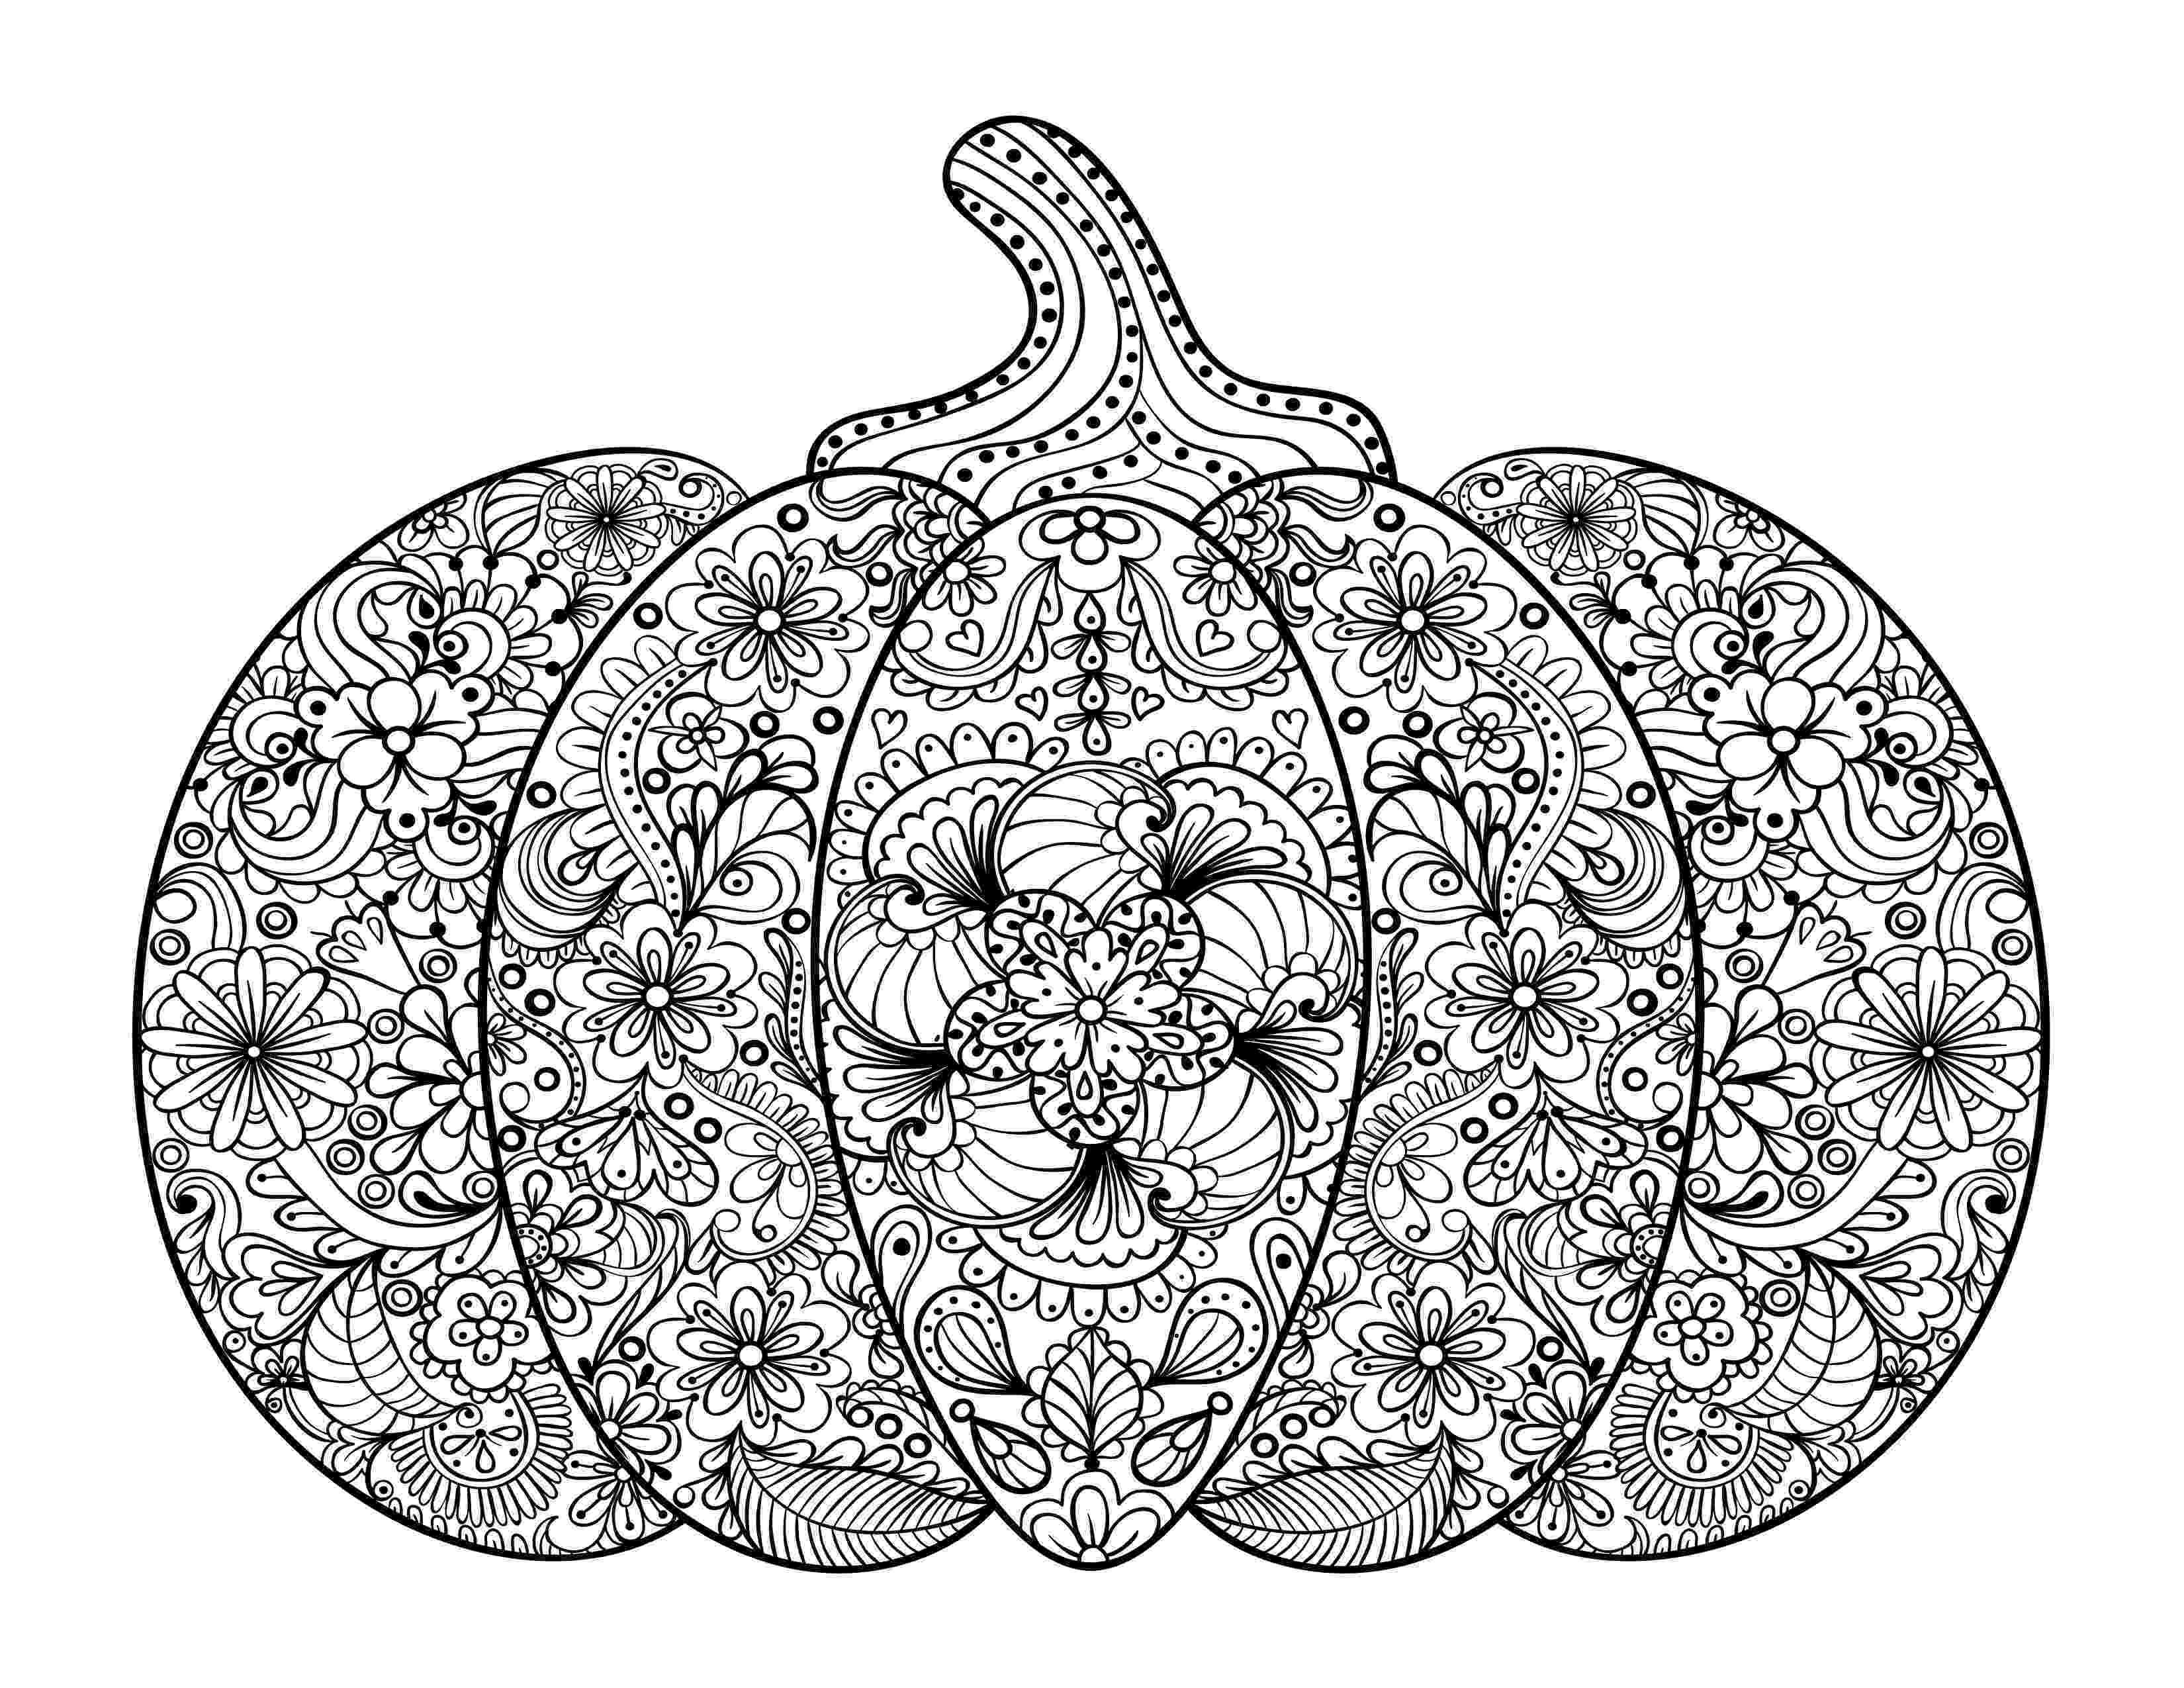 free colouring pages to print for adults free printable abstract coloring pages for adults to adults colouring free print for pages